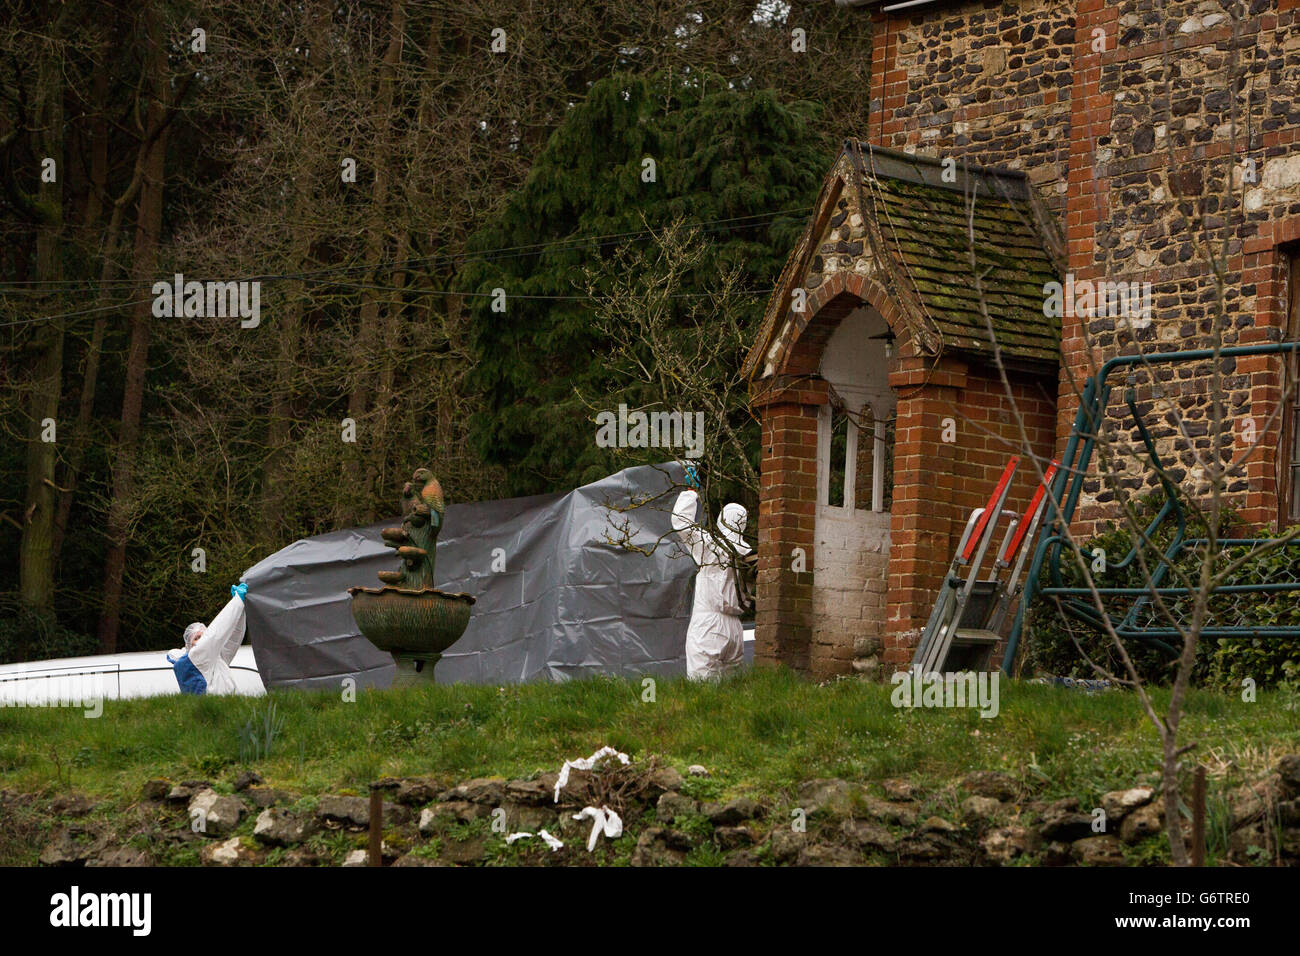 Police Forensic Officers At Keepers Cottage Stud In Farnham Surrey Stock Photo Alamy